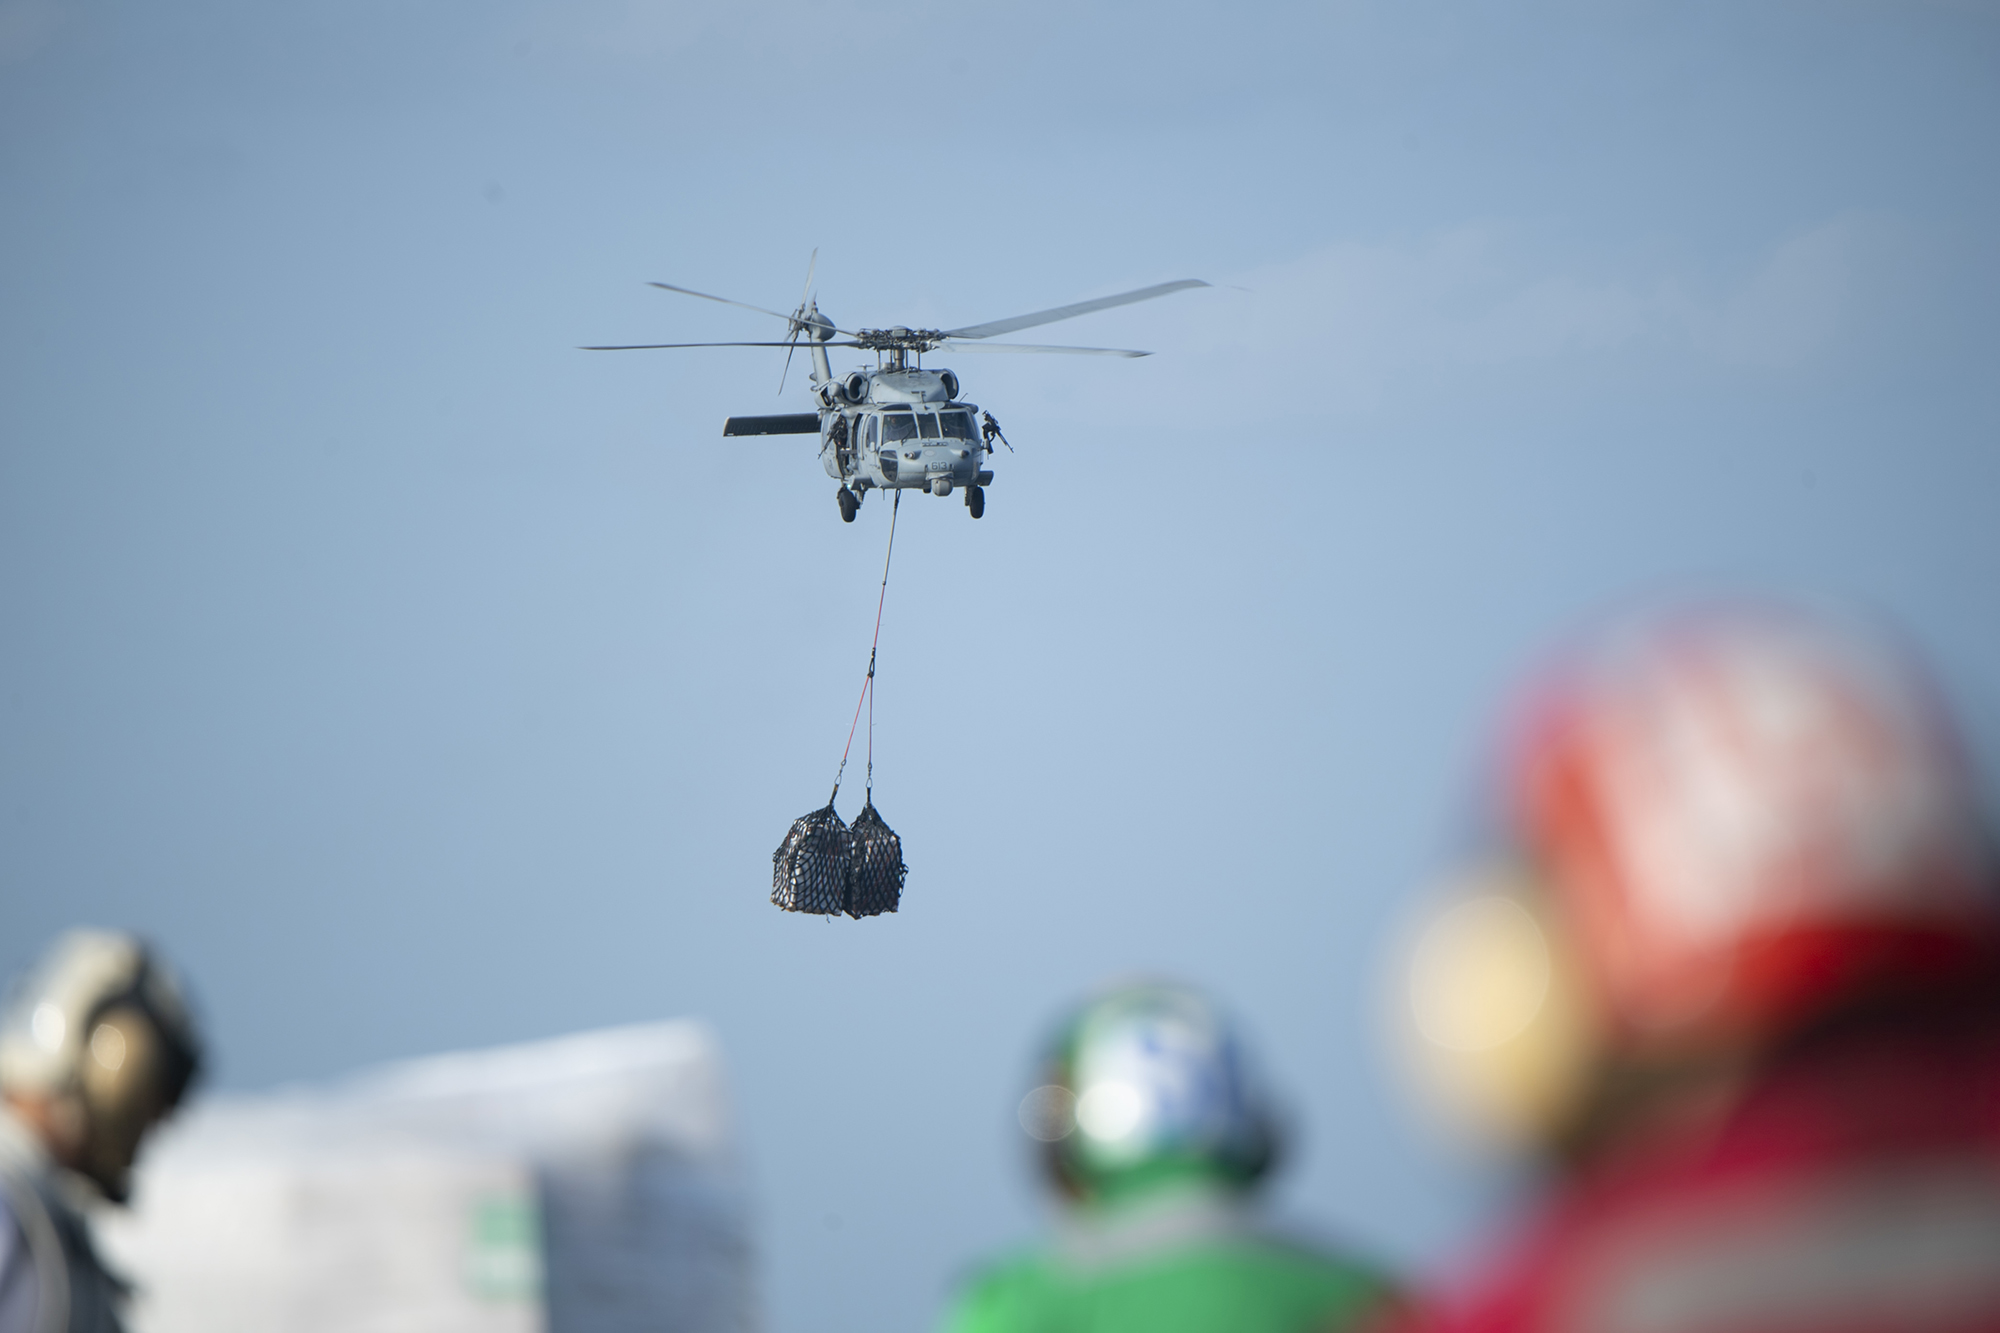 An MH-60S Sea Hawk helicopter transports cargo to the aircraft carrier USS Harry S. Truman (CVN 75) from the USNS Wally Schirra (T-AKE 8) during a replenishment-at-sea in the Arabian Sea on Dec. 21, 2019. (Mass Communication Specialist 2nd Class Jake Carrillo/Navy)